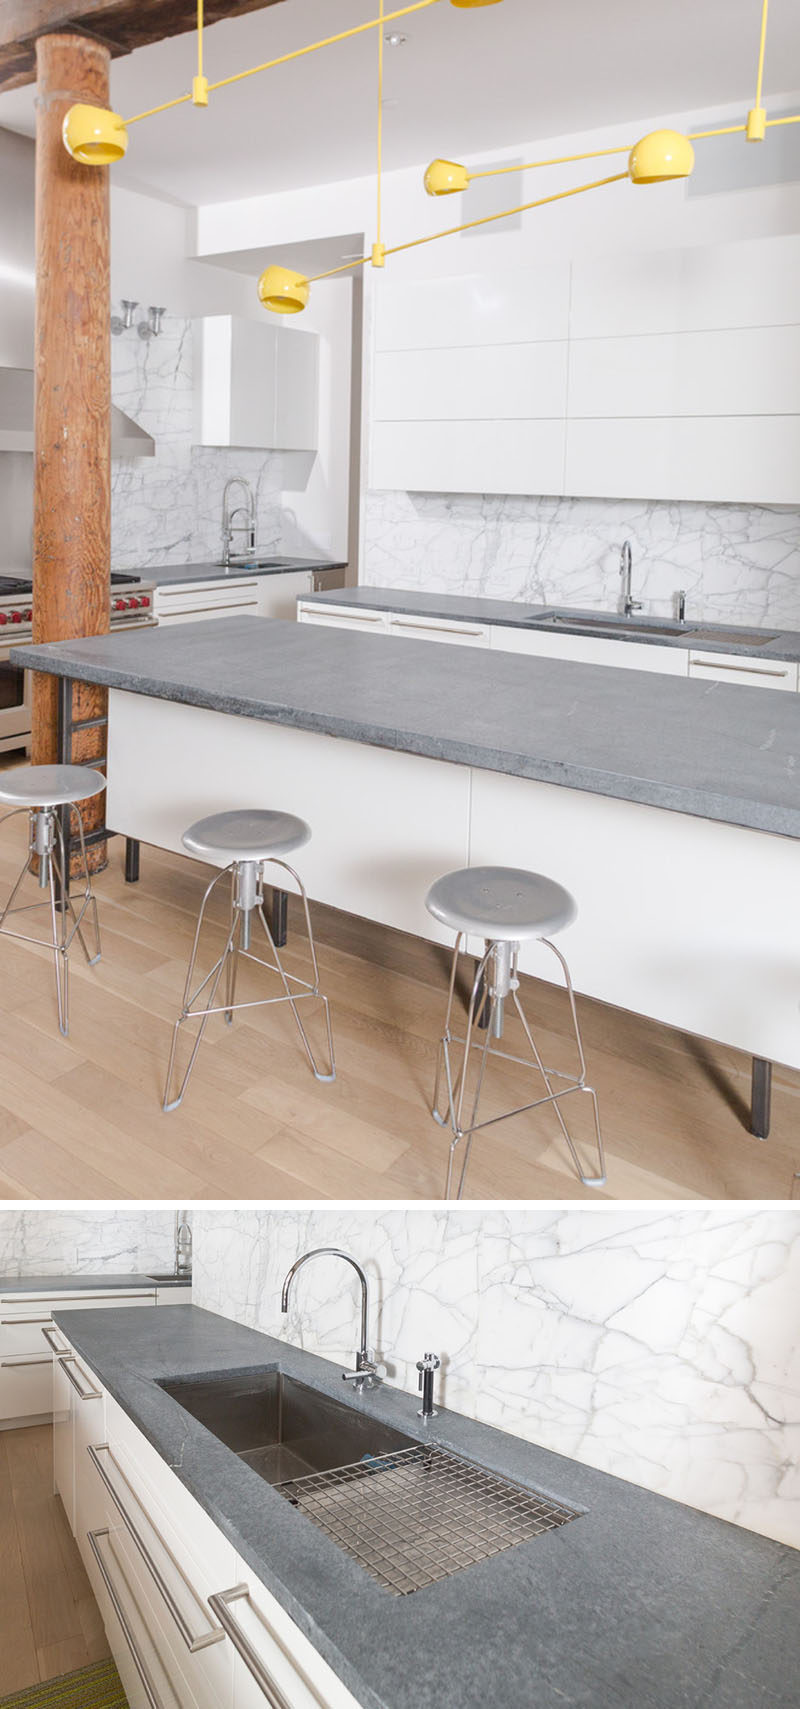 Kitchen Design Idea - 5 Unconventional Materials You Can Use For A Countertop // Soapstone -- Soapstone is known mostly for its softness, making it great for carving and other artistic applications. But soapstone comes in varying degrees of hardness, and the hardest kind is durable enough to be used as countertop material. Soapstone is a natural stone that's nonporous which makes each piece unique and stain resistant.